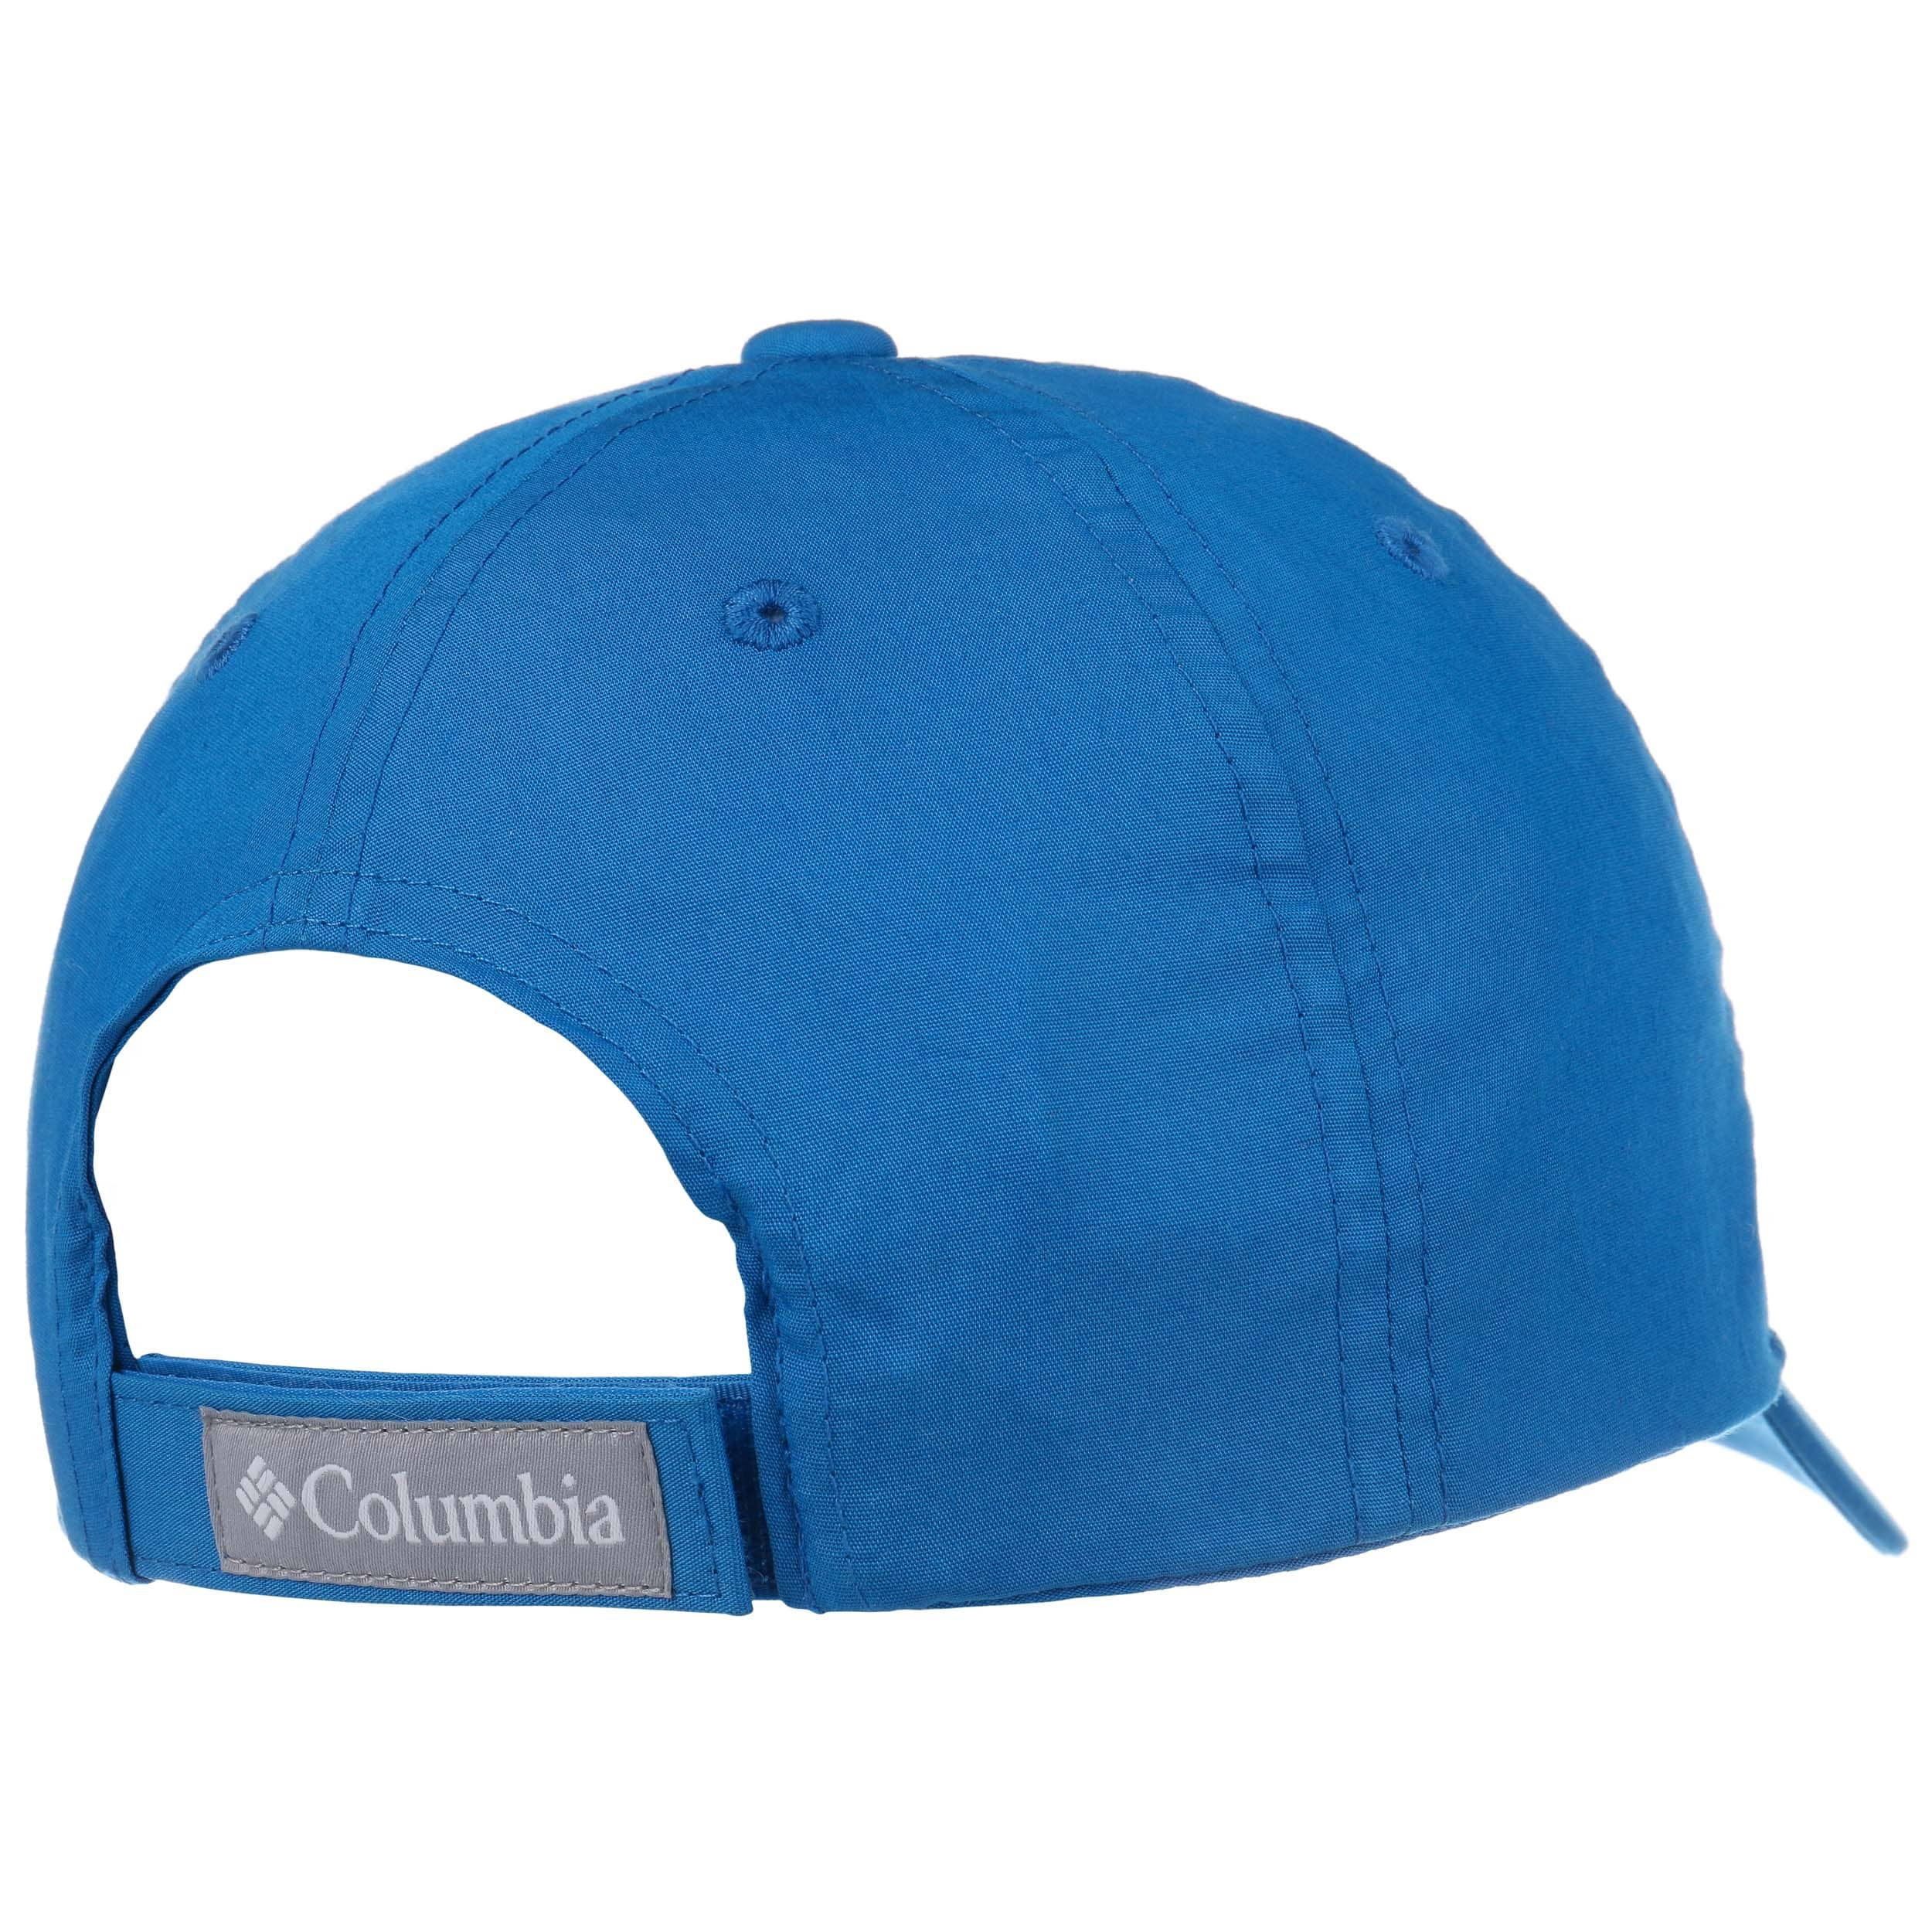 ... Youth Baseball Cap by Columbia - blue 3 ... 5a79a715500